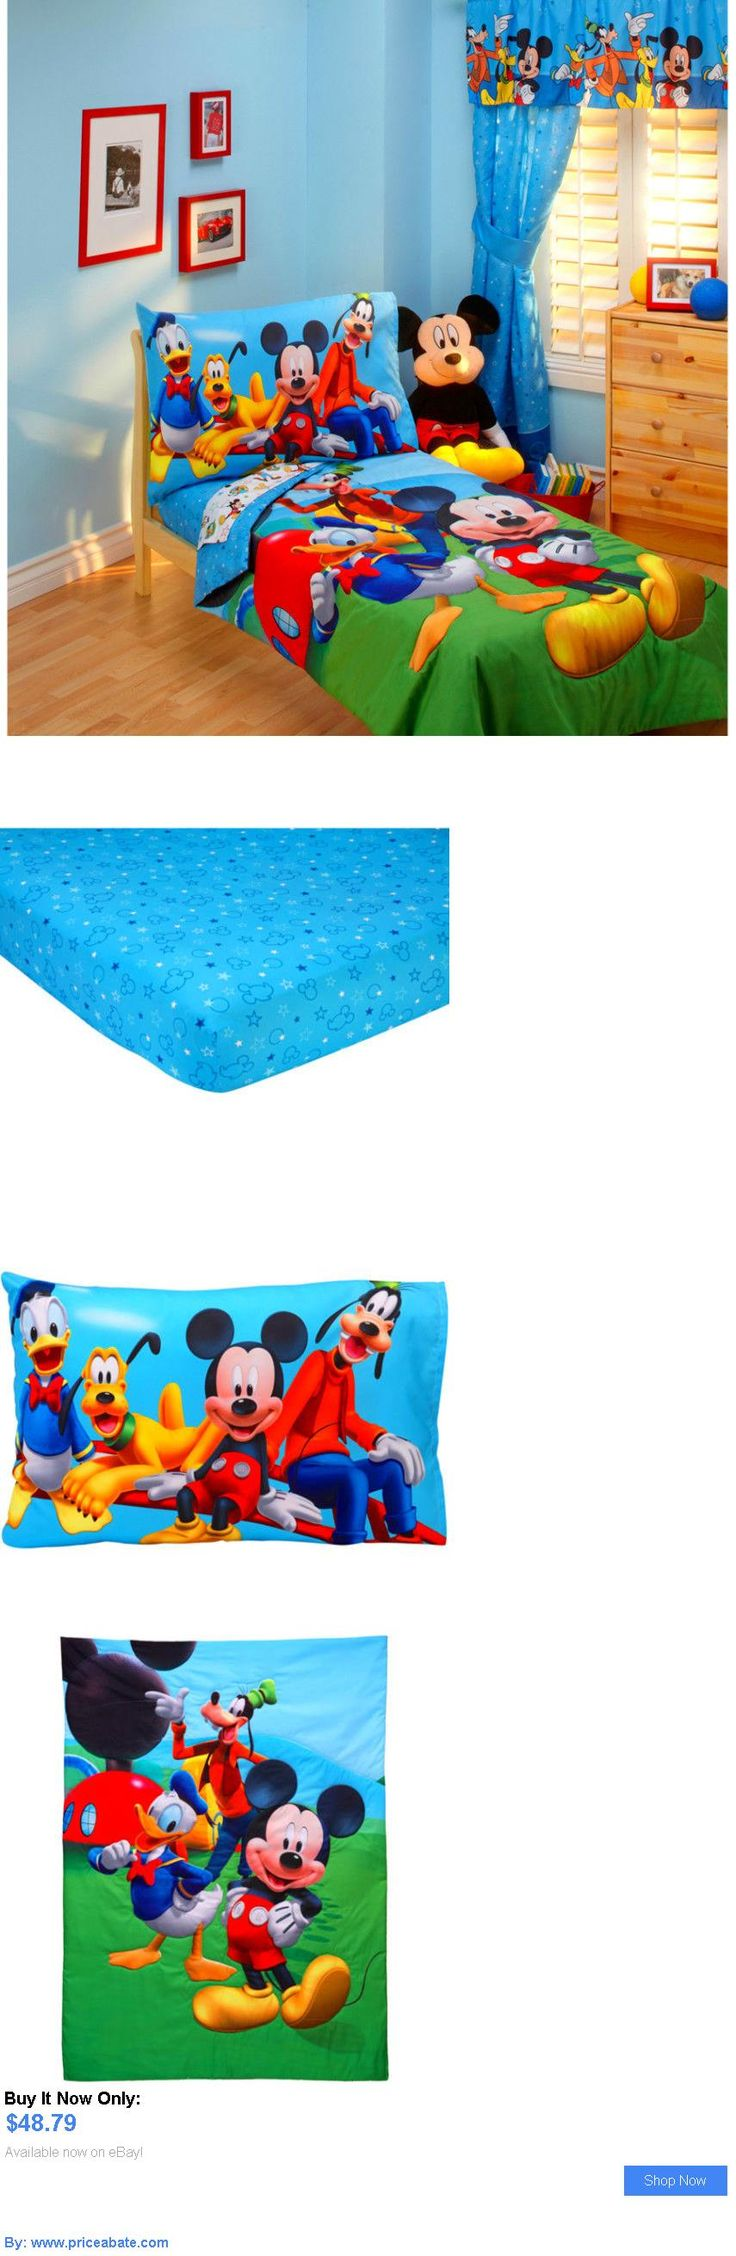 best 20 mickey mouse bedroom ideas on pinterest mickey mouse kids at home mickey mouse clubhouse toddler bed crib bedding set sheet comforter kids bedroom